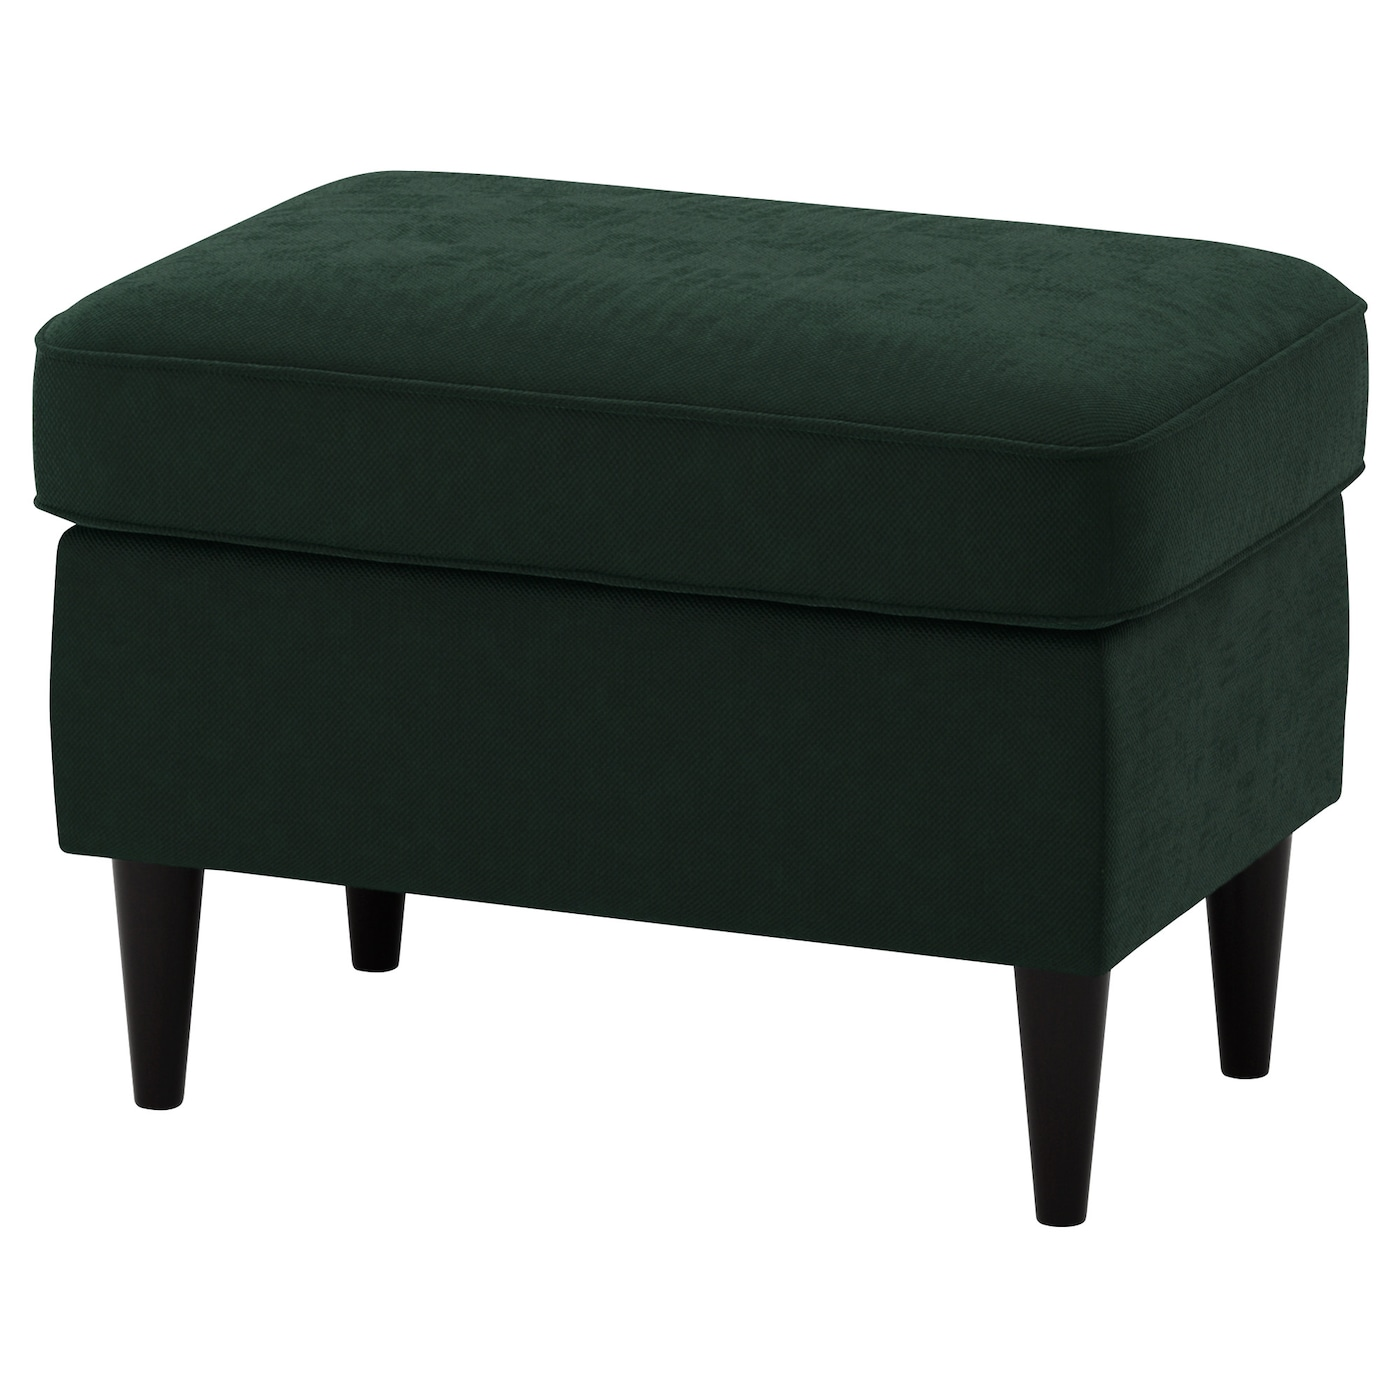 IKEA STRANDMON footstool Works as an extra seat or footstool.